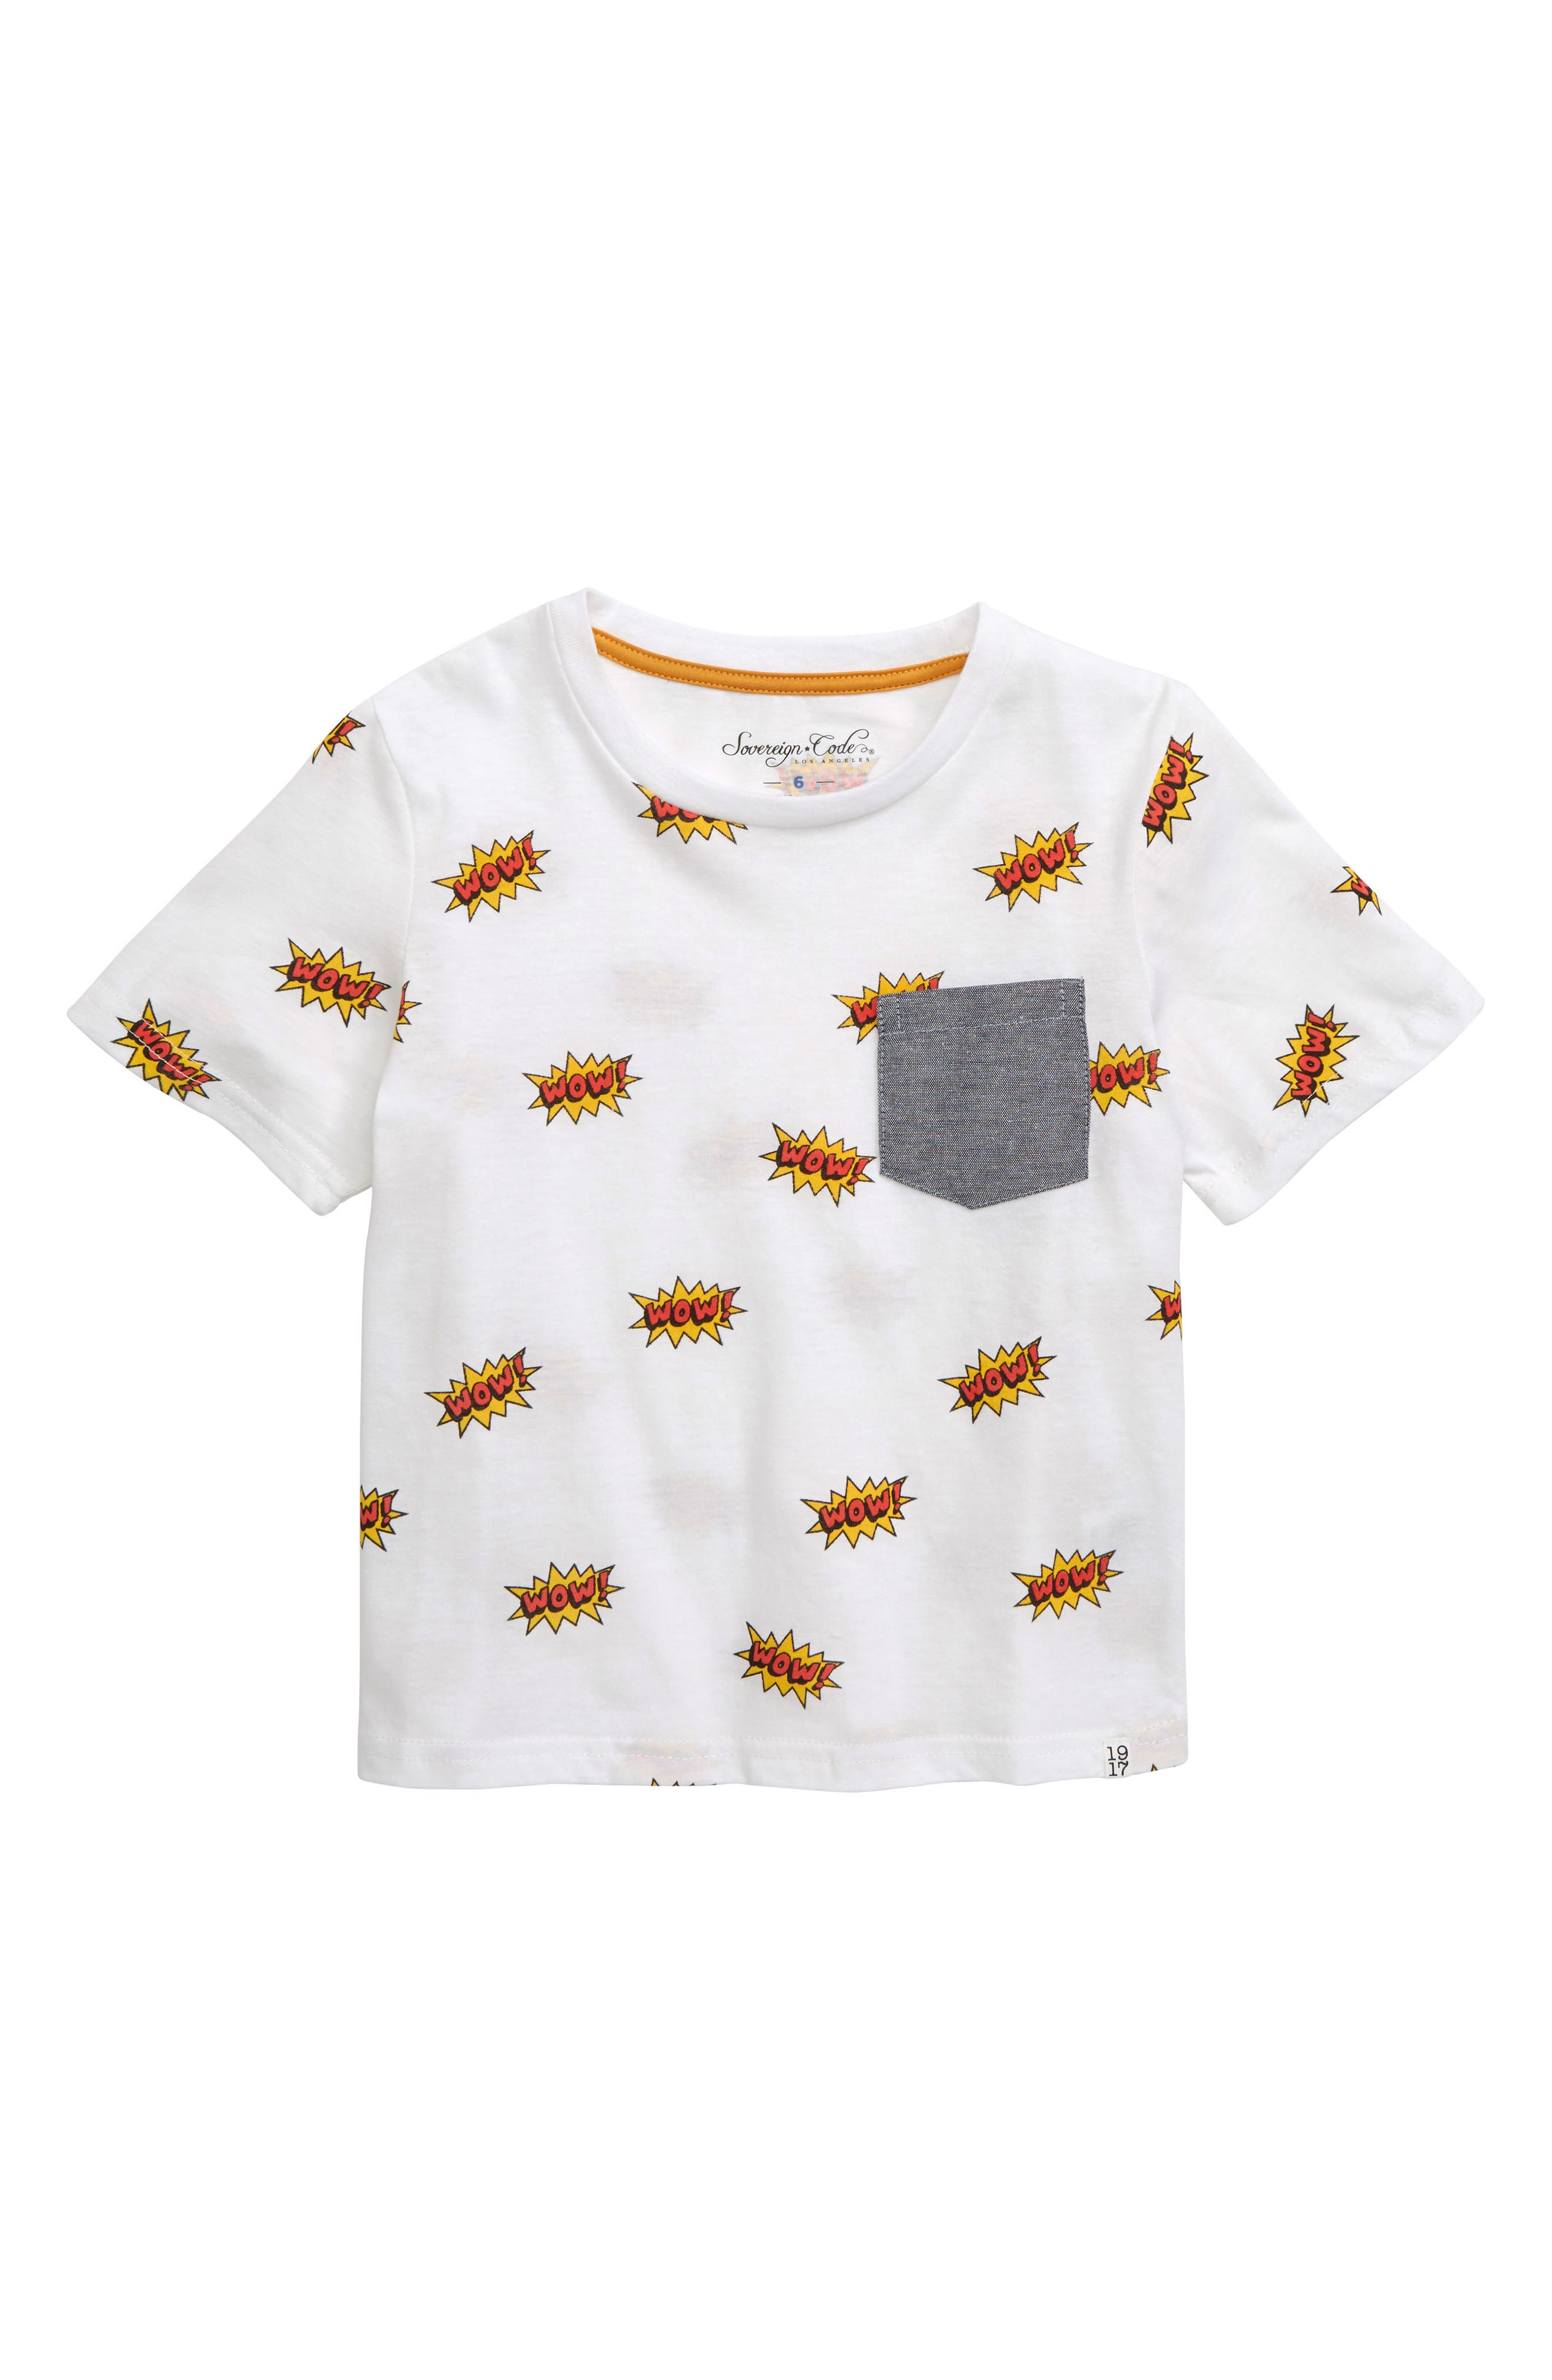 729bf39dbf Kids  Sovereign Code Apparel  T-Shirts